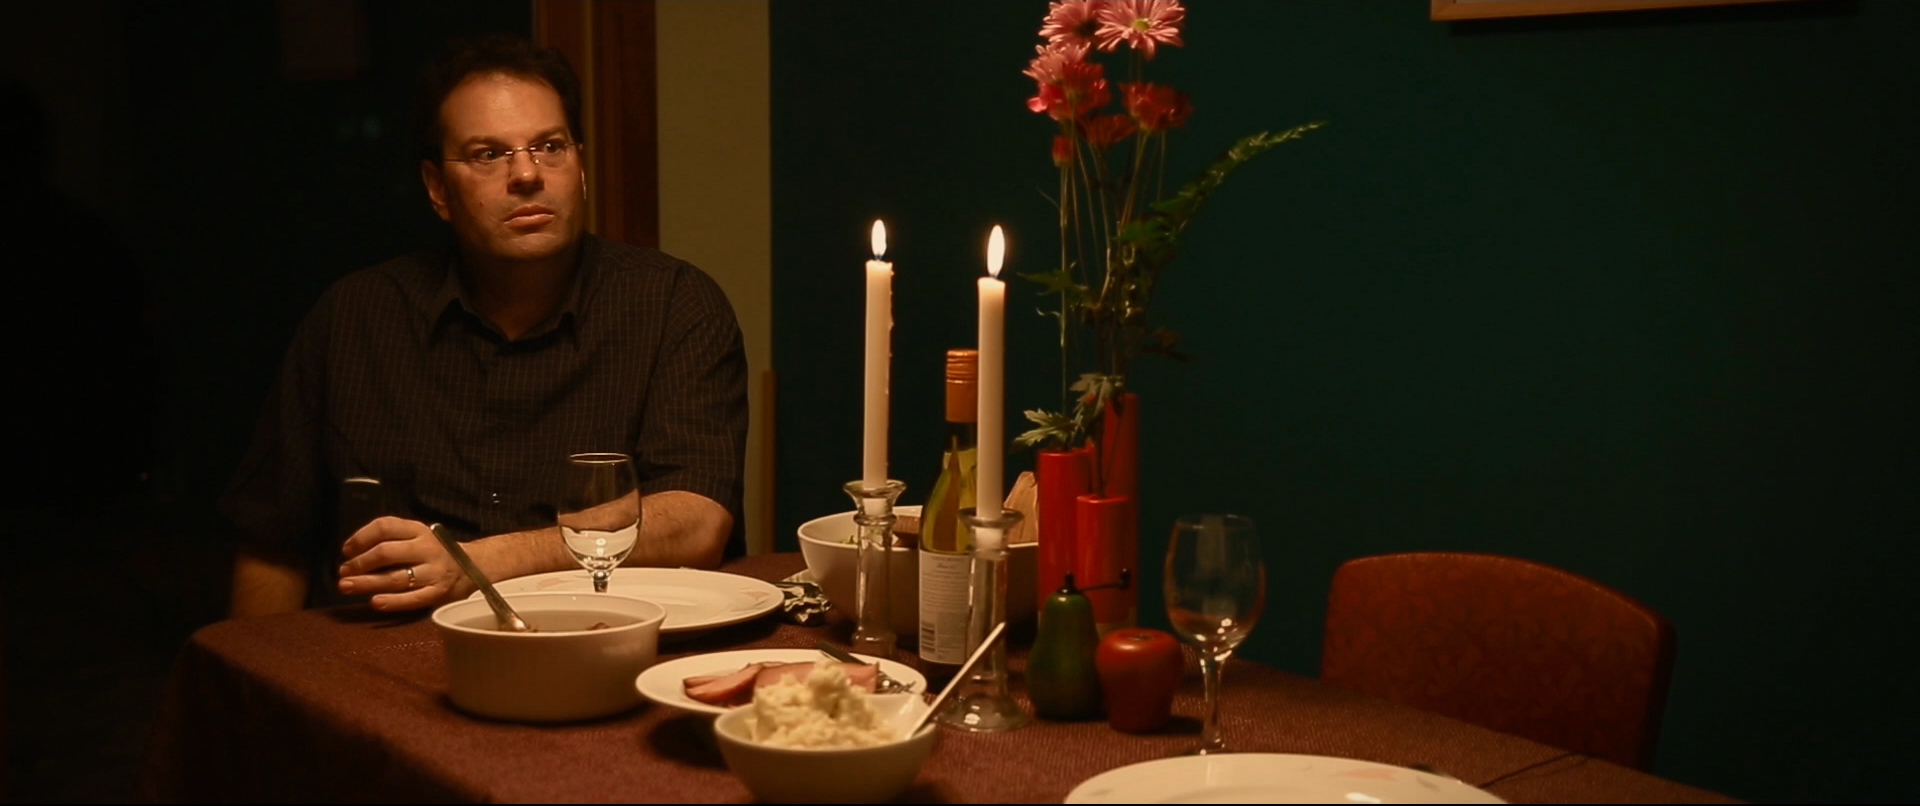 James alone candles.jpg